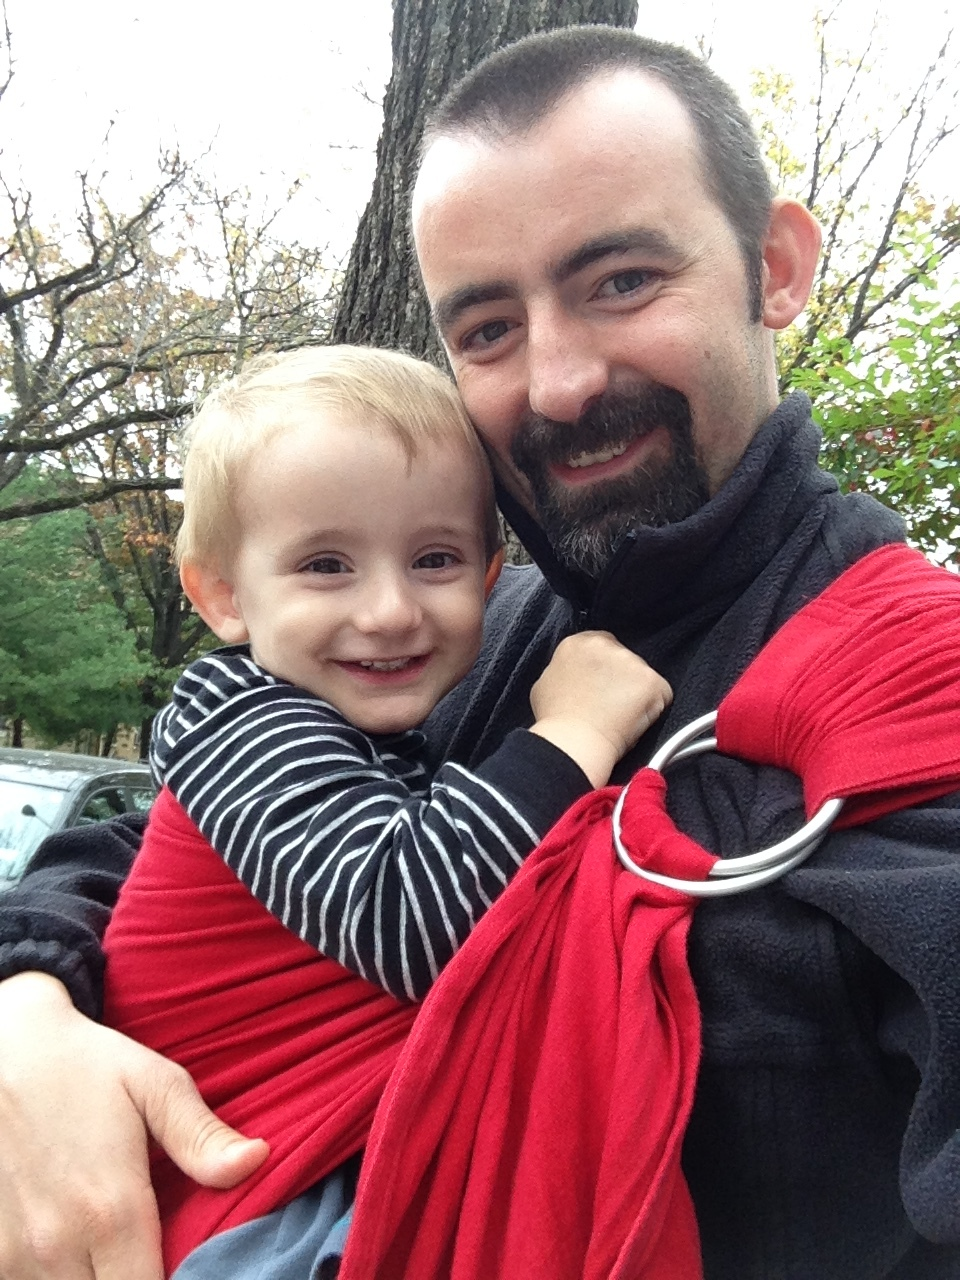 The husband rockin a ring sling! Bright red no less...